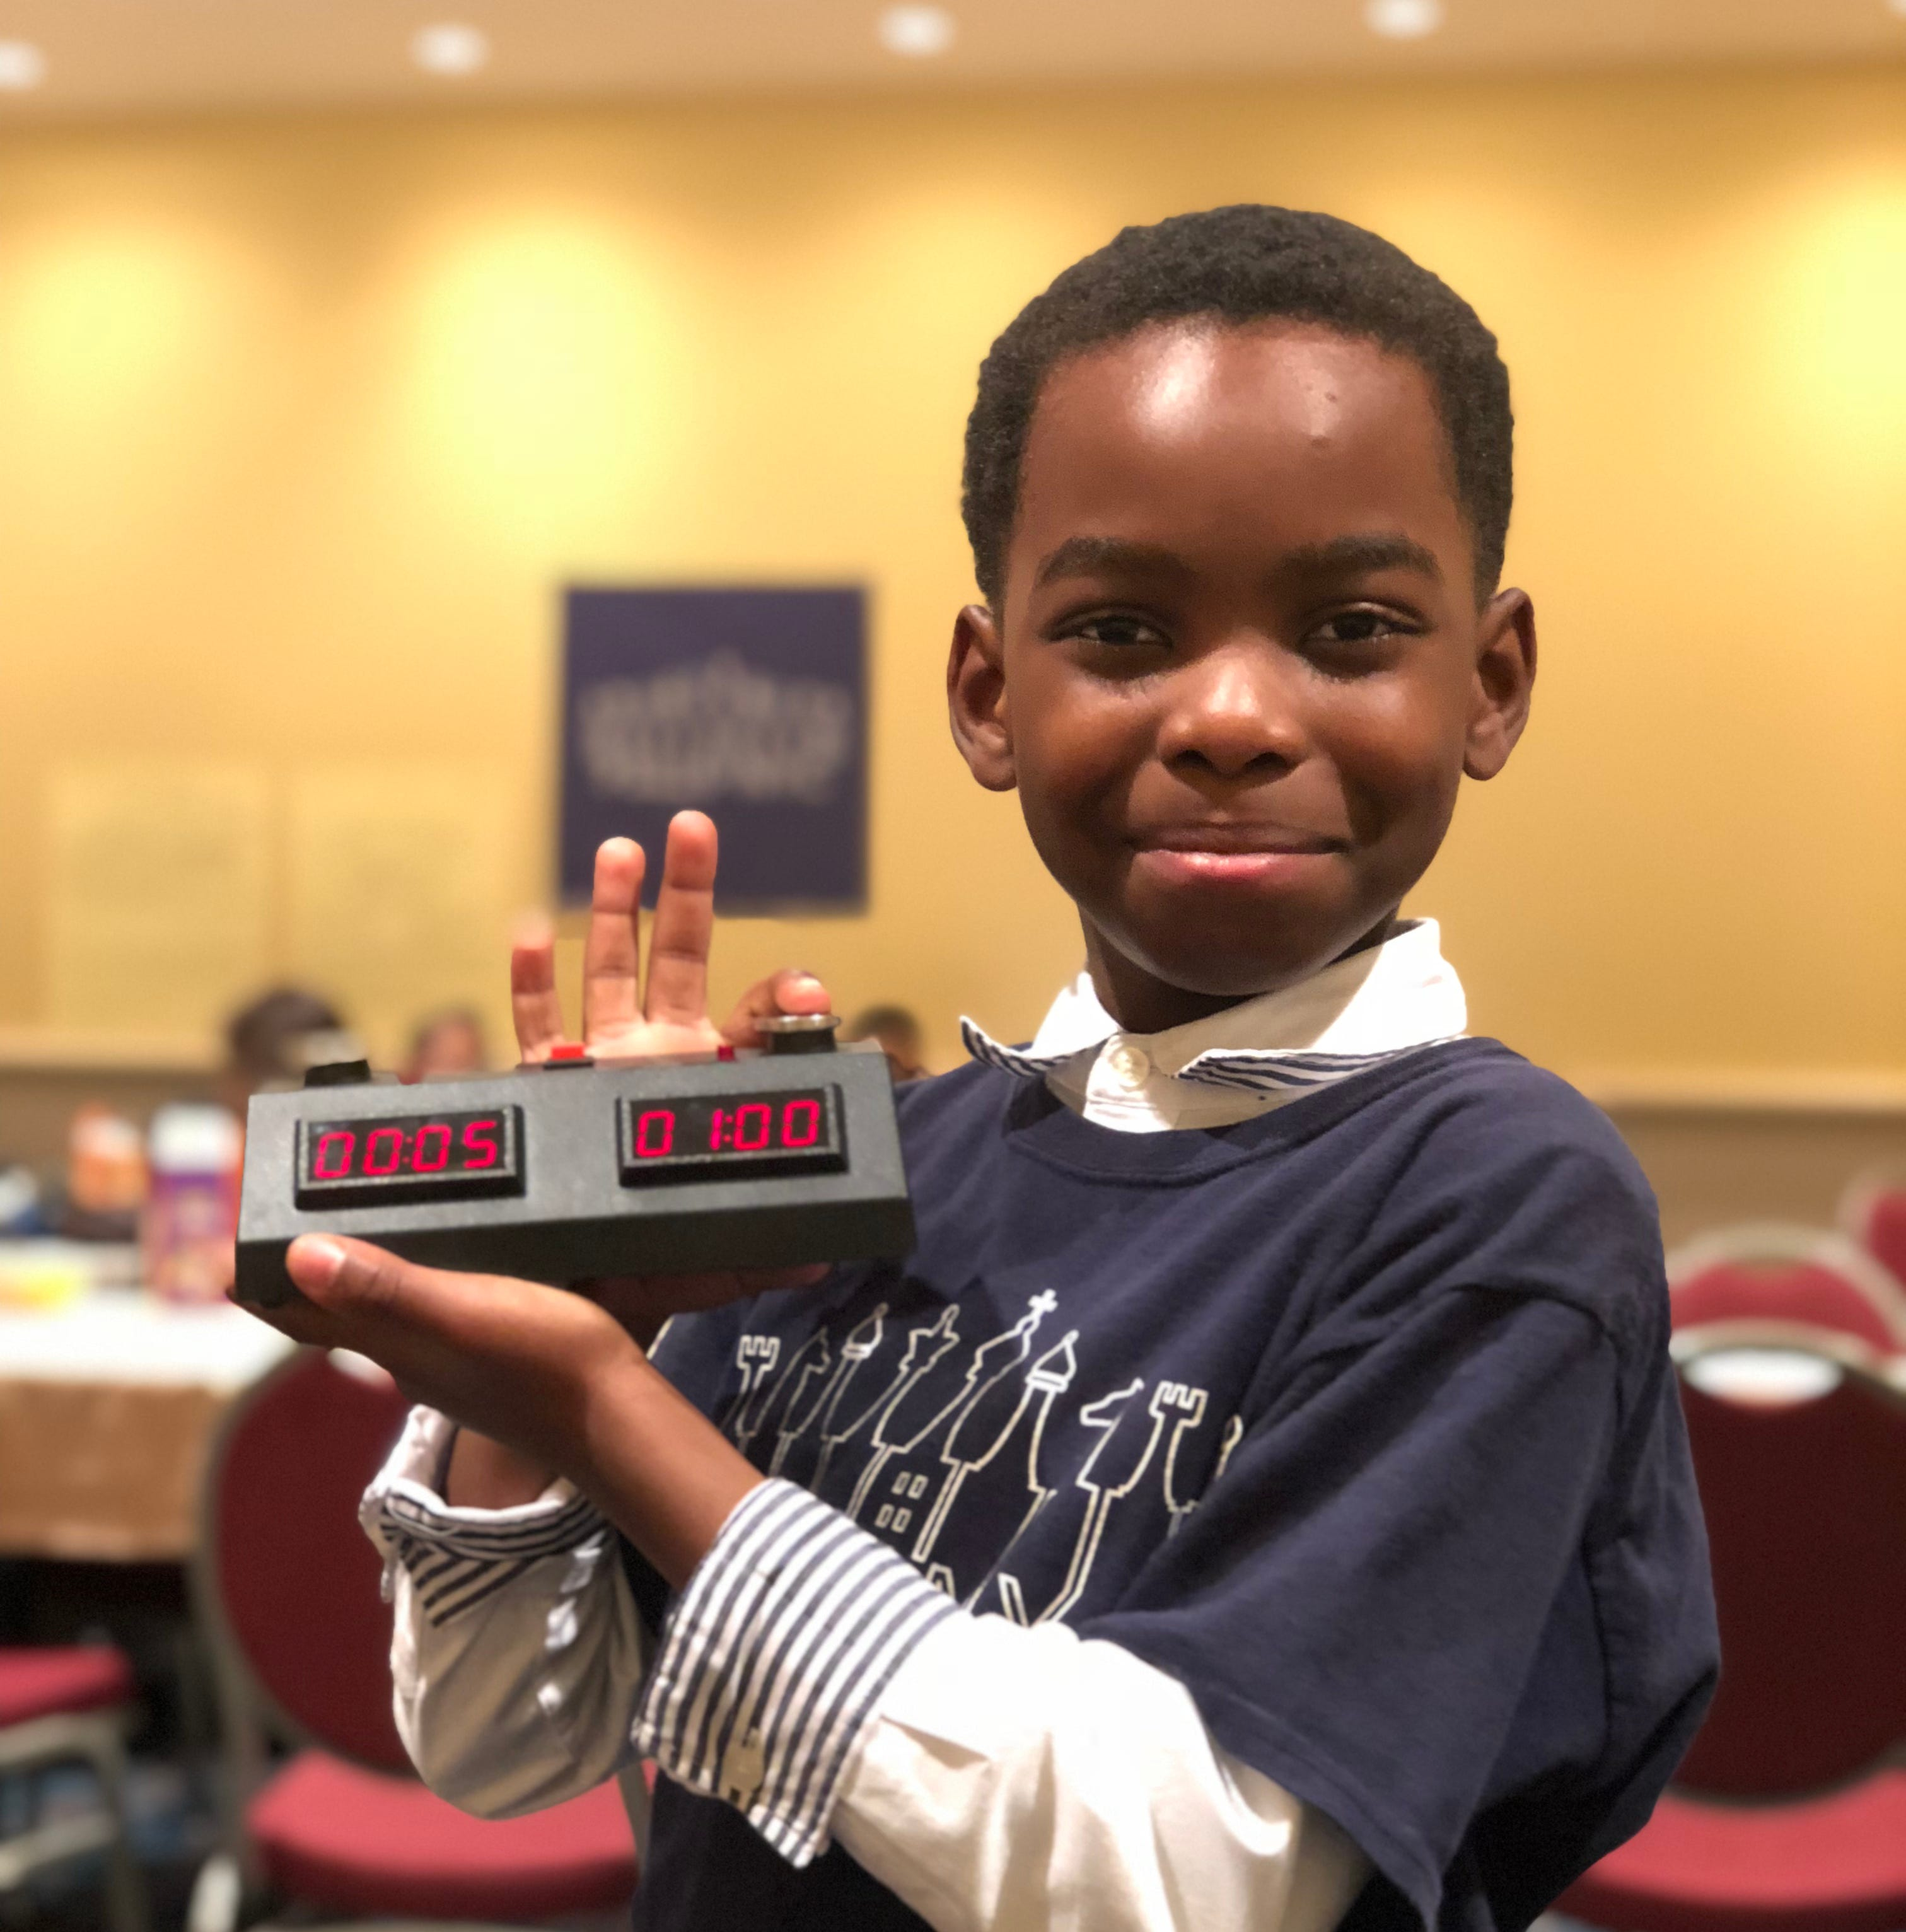 Nigerian refugee, 8, wins New York chess championship: 'I want to be the youngest grandmaster'